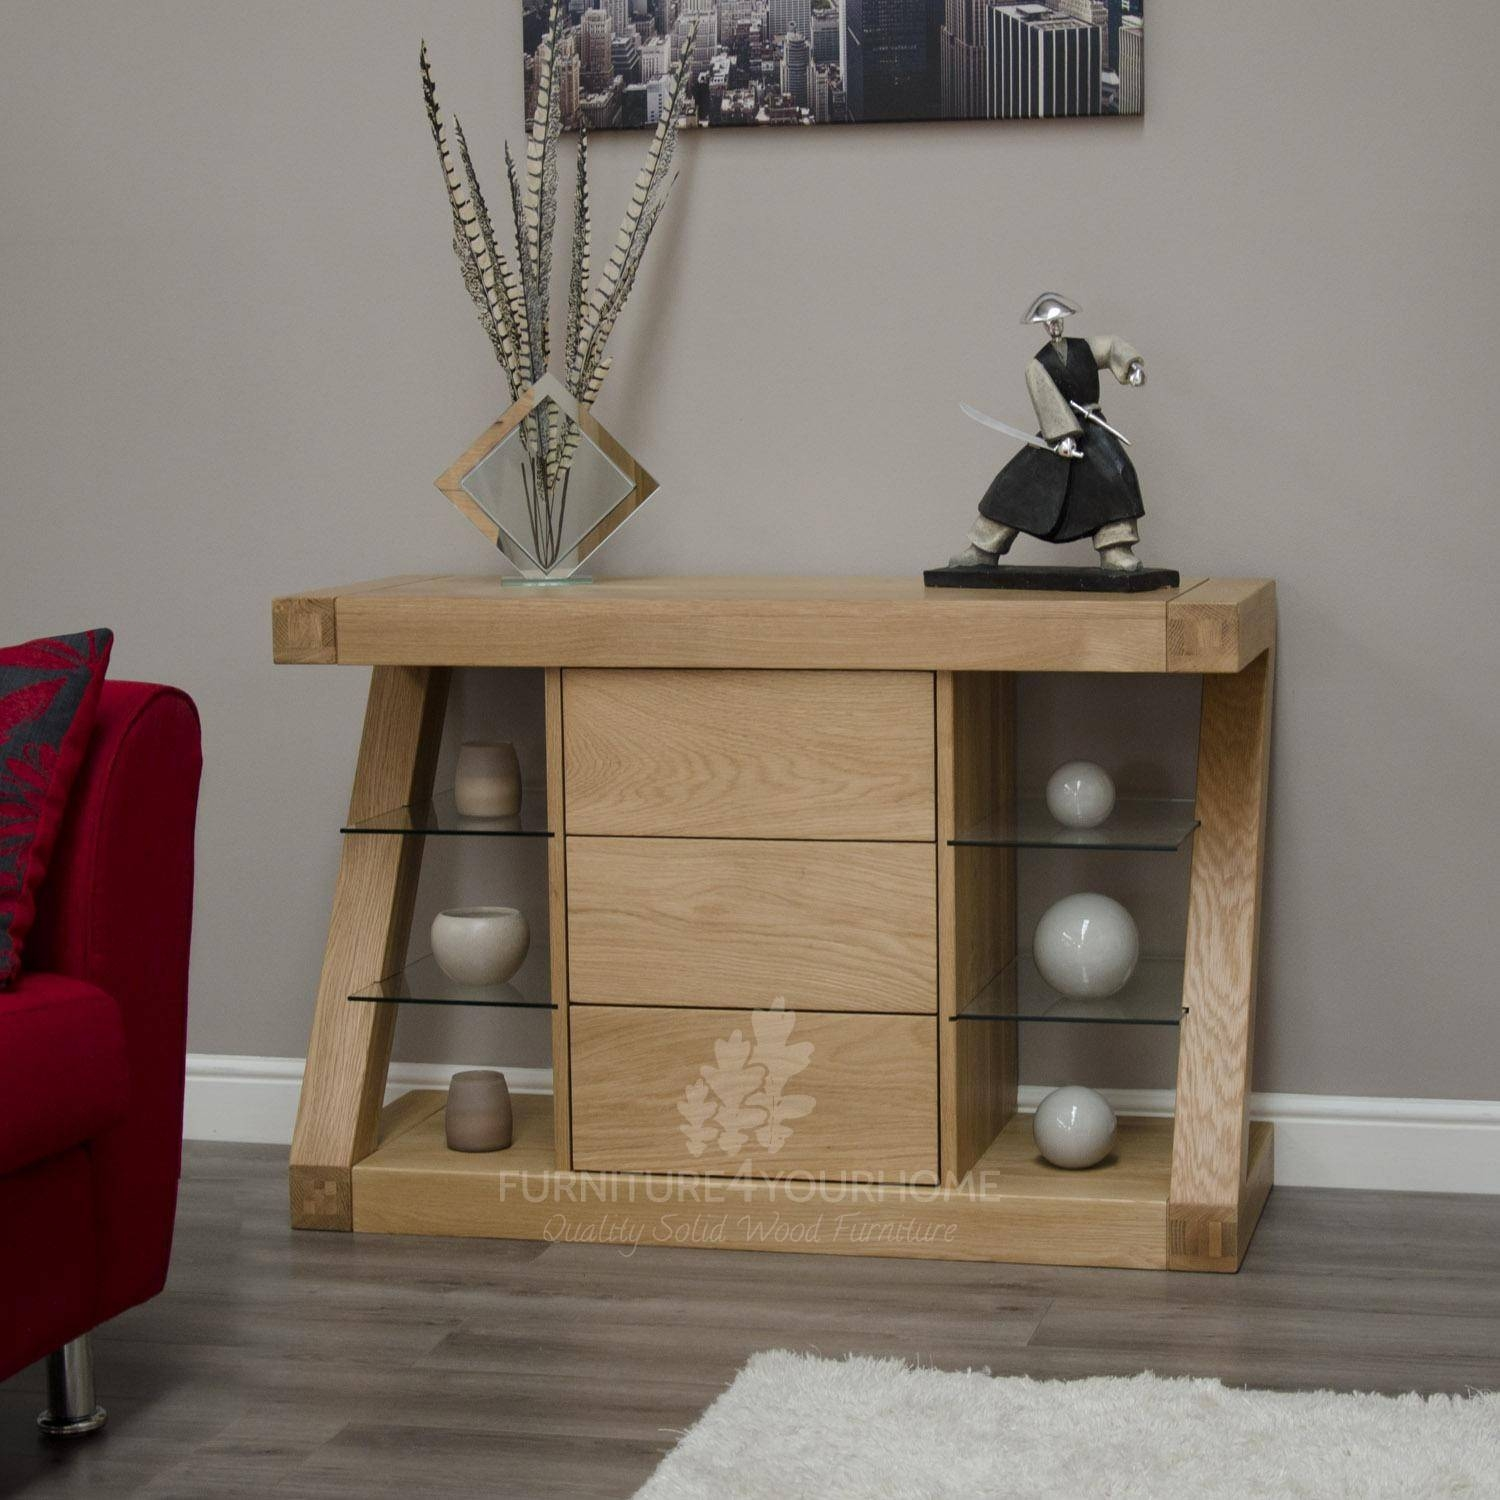 Z Oak Designer Small Sideboard | Furniture4Yourhome with regard to Small Wooden Sideboards (Image 30 of 30)